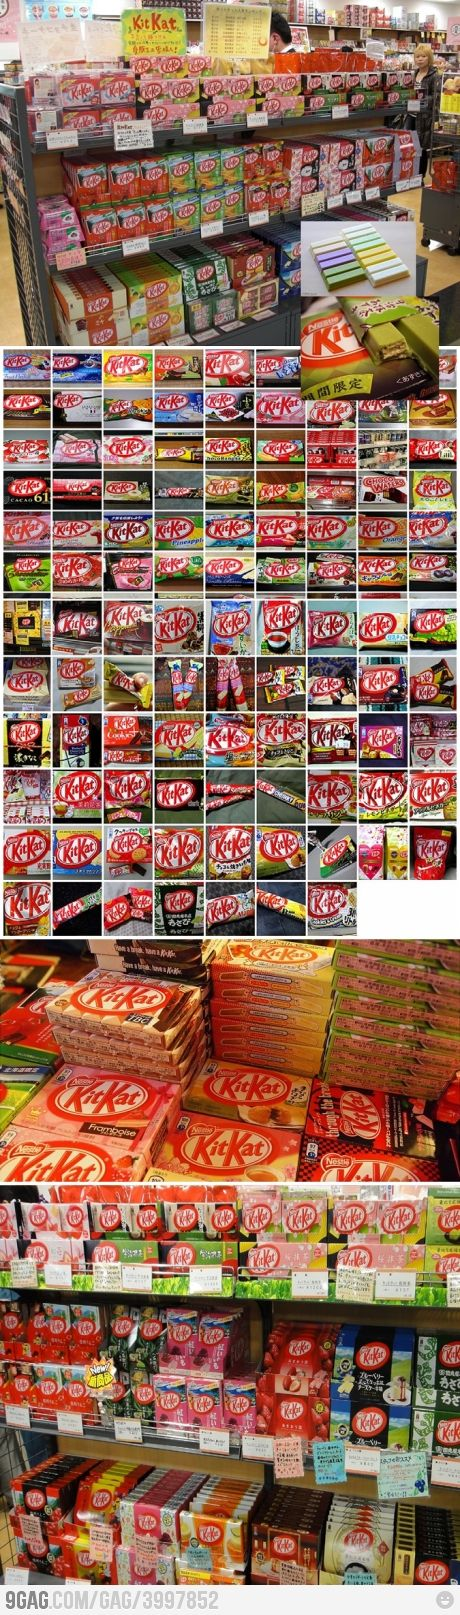 Meanwhile in Japan ============================ Only in Japan.. where you will find different, various varieties of KitーKat Bars. From the traditional, to seasonal, to the current ー ( such as  Baked potato; Soy sauce; Cherry blossom; Fruit Parfait flavours etc..) latest craze and trend - you name it → they have a 'KITーKAT' flavor for it!